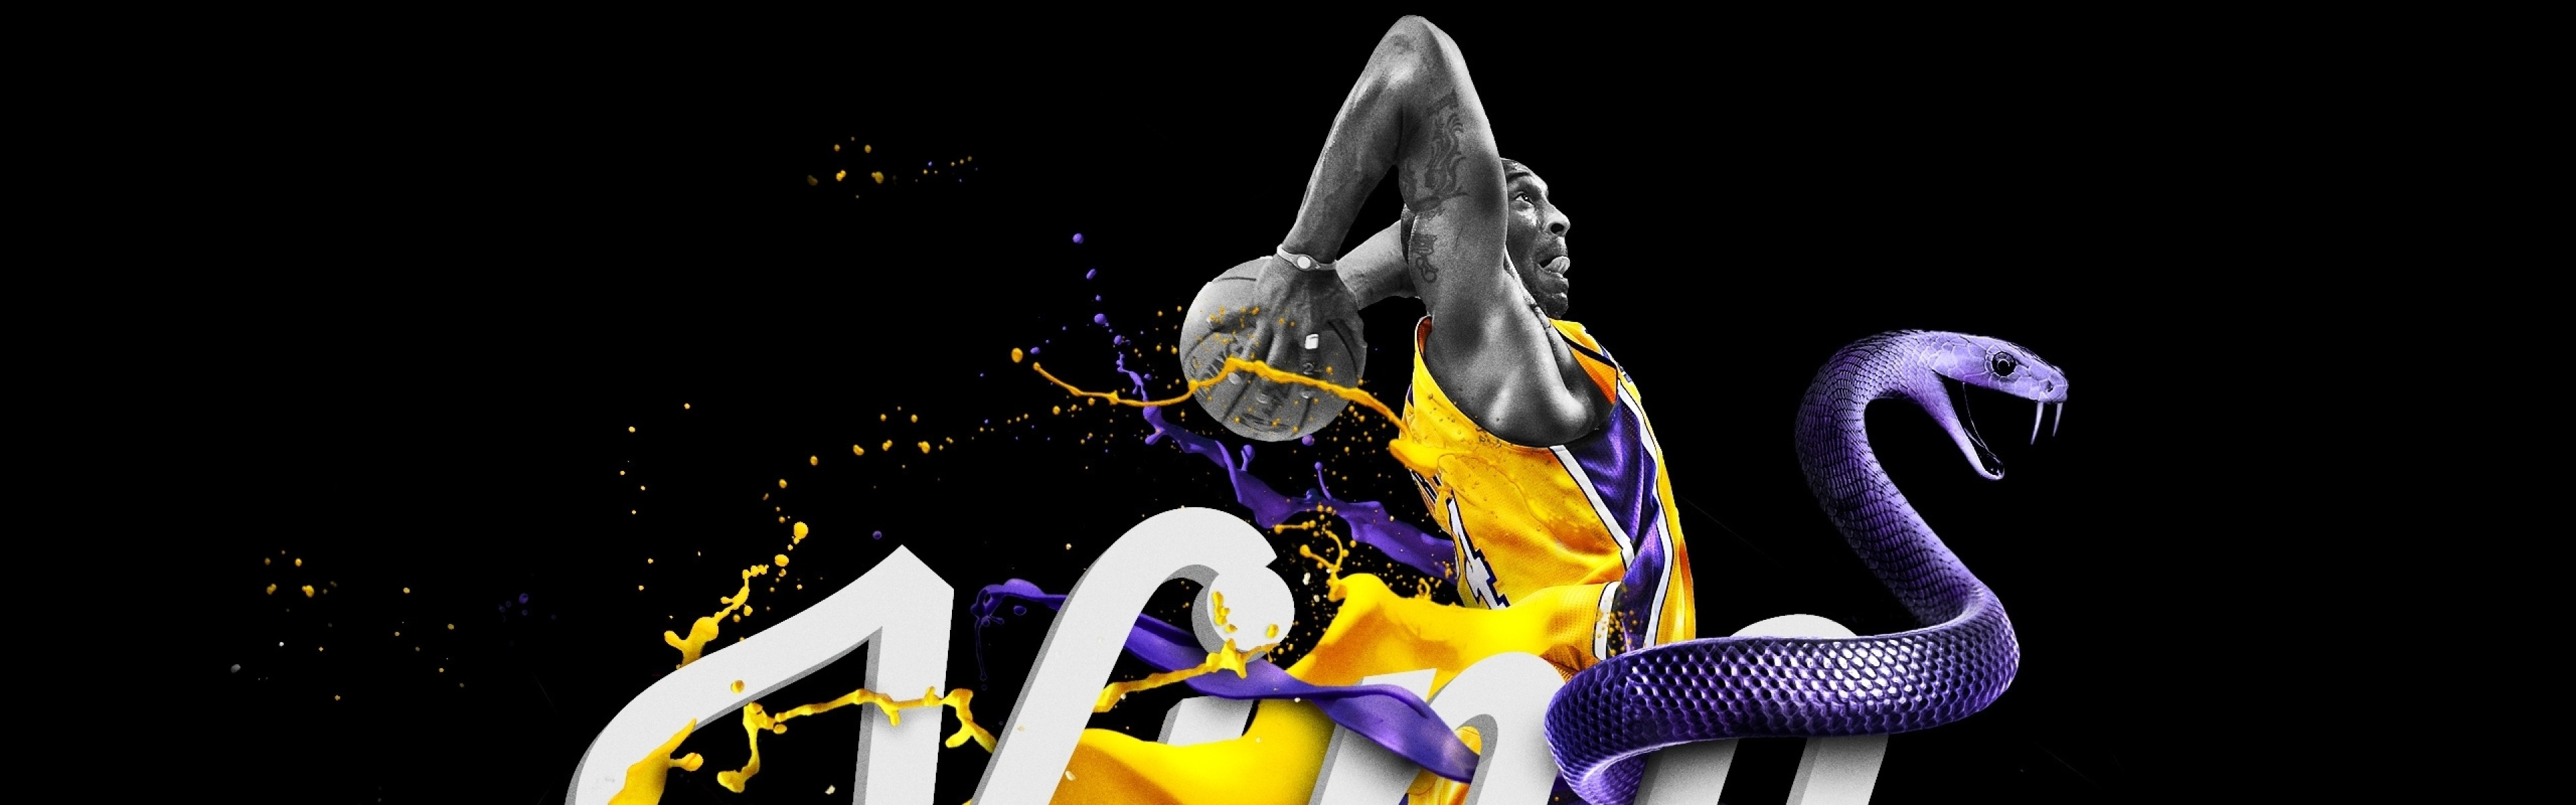 Lebron James Iphone Wallpaper Kobe Bryant Logo Wallpaper 66 Images